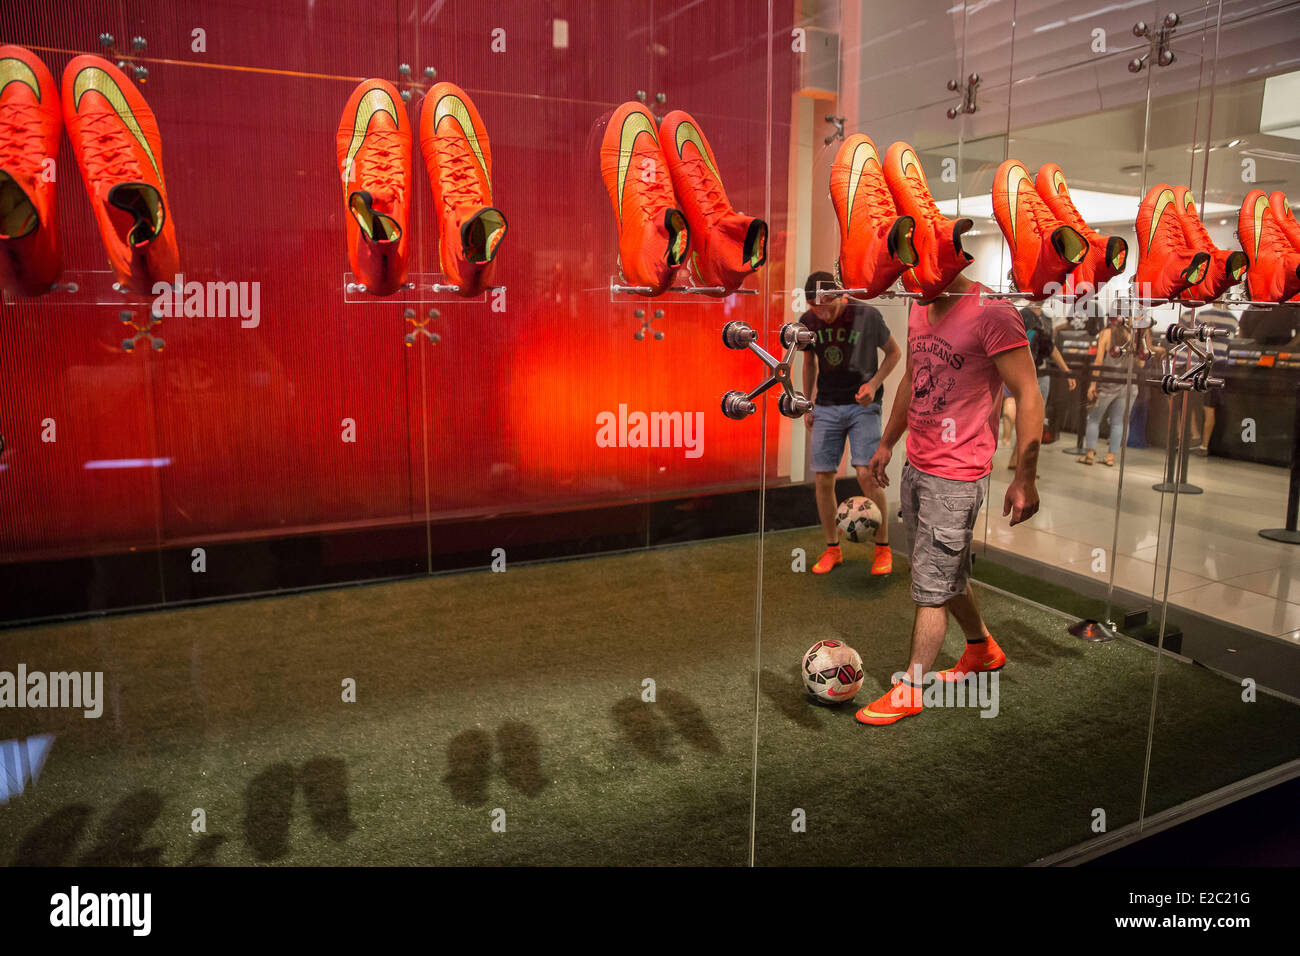 Revolucionario Incomparable Voluntario  New York, NY, US. 18th June, 2014. Nike launched it's new World Cup Stock  Photo - Alamy